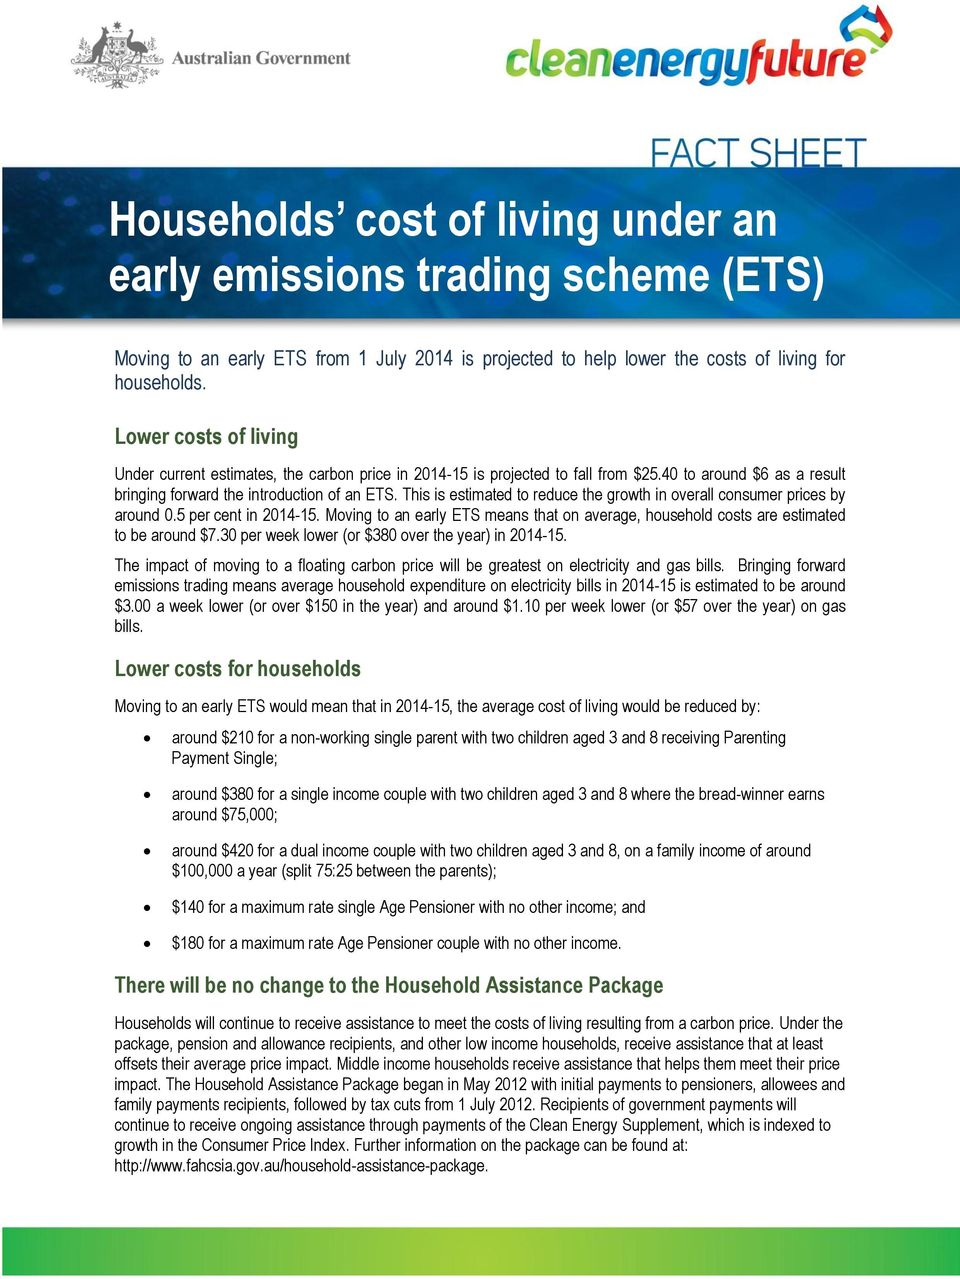 This is estimated to reduce the growth in overall consumer prices by around 0.5 per cent in 2014-15. Moving to an early ETS means that on average, household costs are estimated to be around $7.